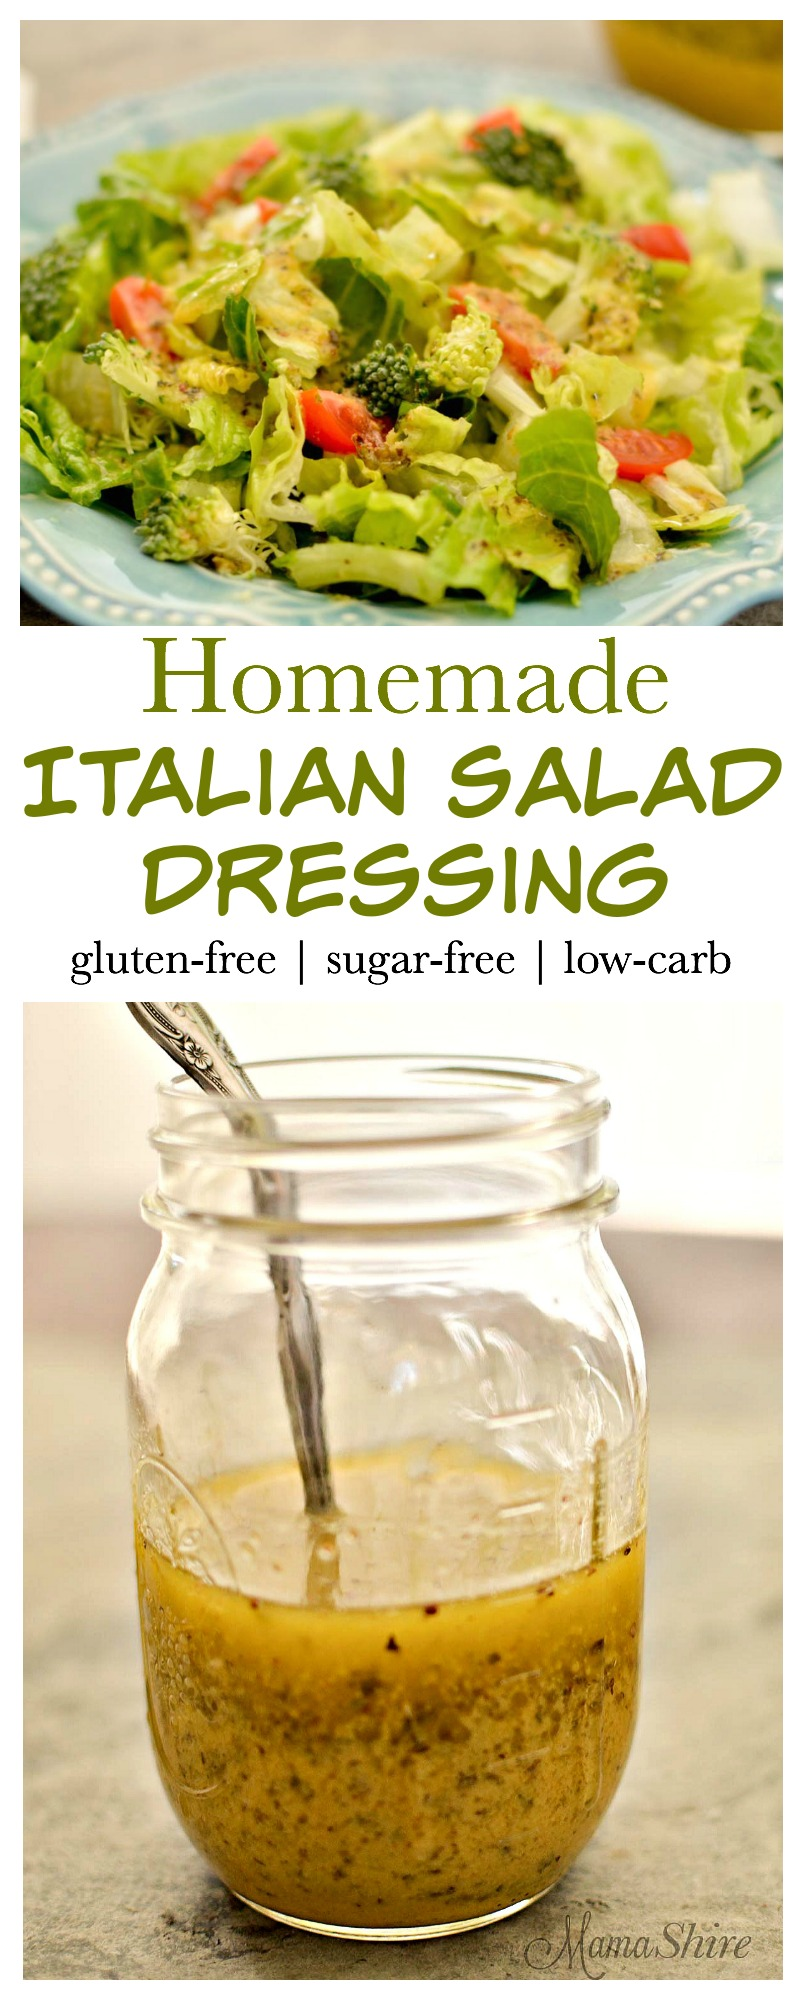 Homemade Italian Salad Dressing - Gluten-free, Sugar-free, Low-carb